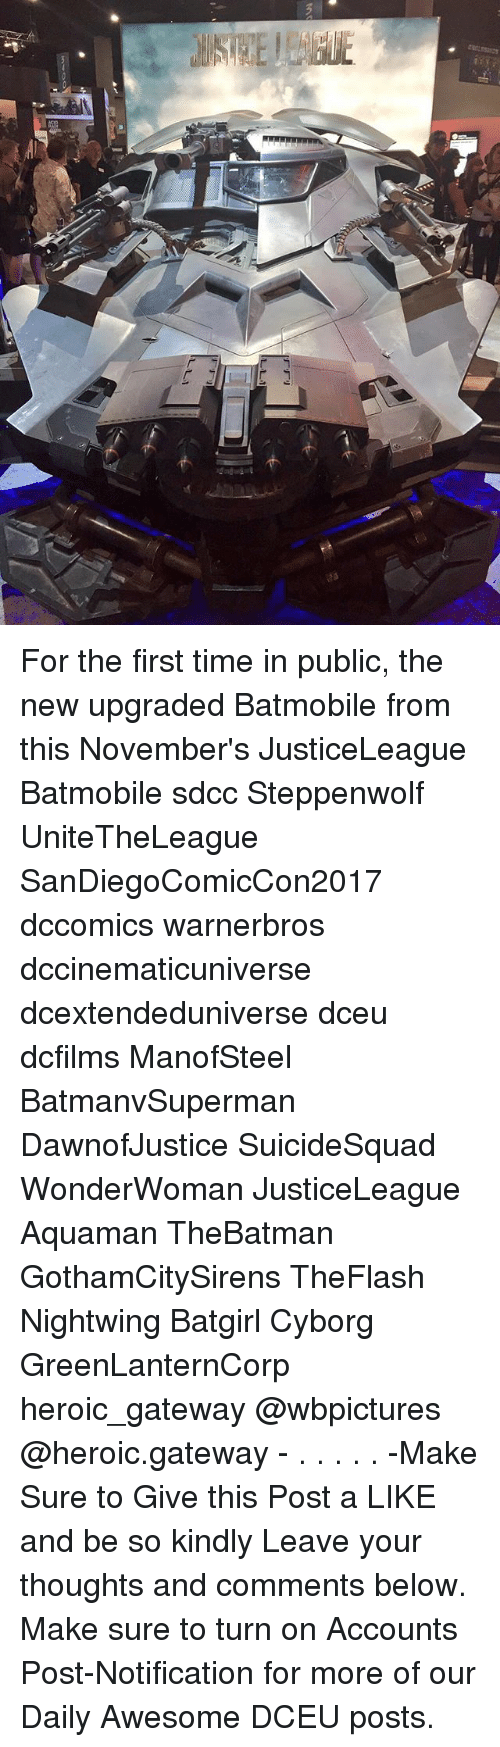 Memes, Gateway, and Time: For the first time in public, the new upgraded Batmobile from this November's JusticeLeague Batmobile sdcc Steppenwolf UniteTheLeague SanDiegoComicCon2017 dccomics warnerbros dccinematicuniverse dcextendeduniverse dceu dcfilms ManofSteel BatmanvSuperman DawnofJustice SuicideSquad WonderWoman JusticeLeague Aquaman TheBatman GothamCitySirens TheFlash Nightwing Batgirl Cyborg GreenLanternCorp heroic_gateway @wbpictures @heroic.gateway - . . . . . -Make Sure to Give this Post a LIKE and be so kindly Leave your thoughts and comments below. Make sure to turn on Accounts Post-Notification for more of our Daily Awesome DCEU posts.